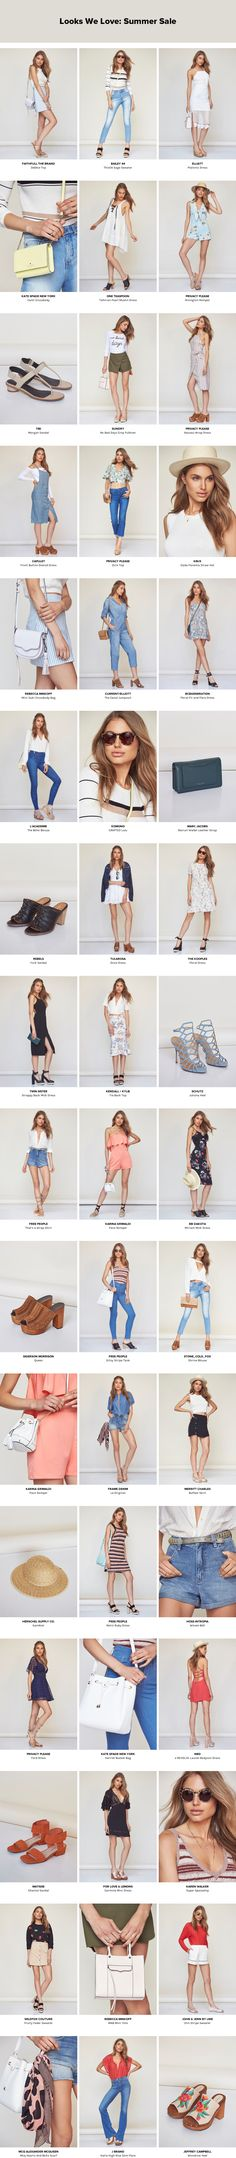 REVOLVE – Looks We Love Summer Sale http://fave.co/2bnrtX6